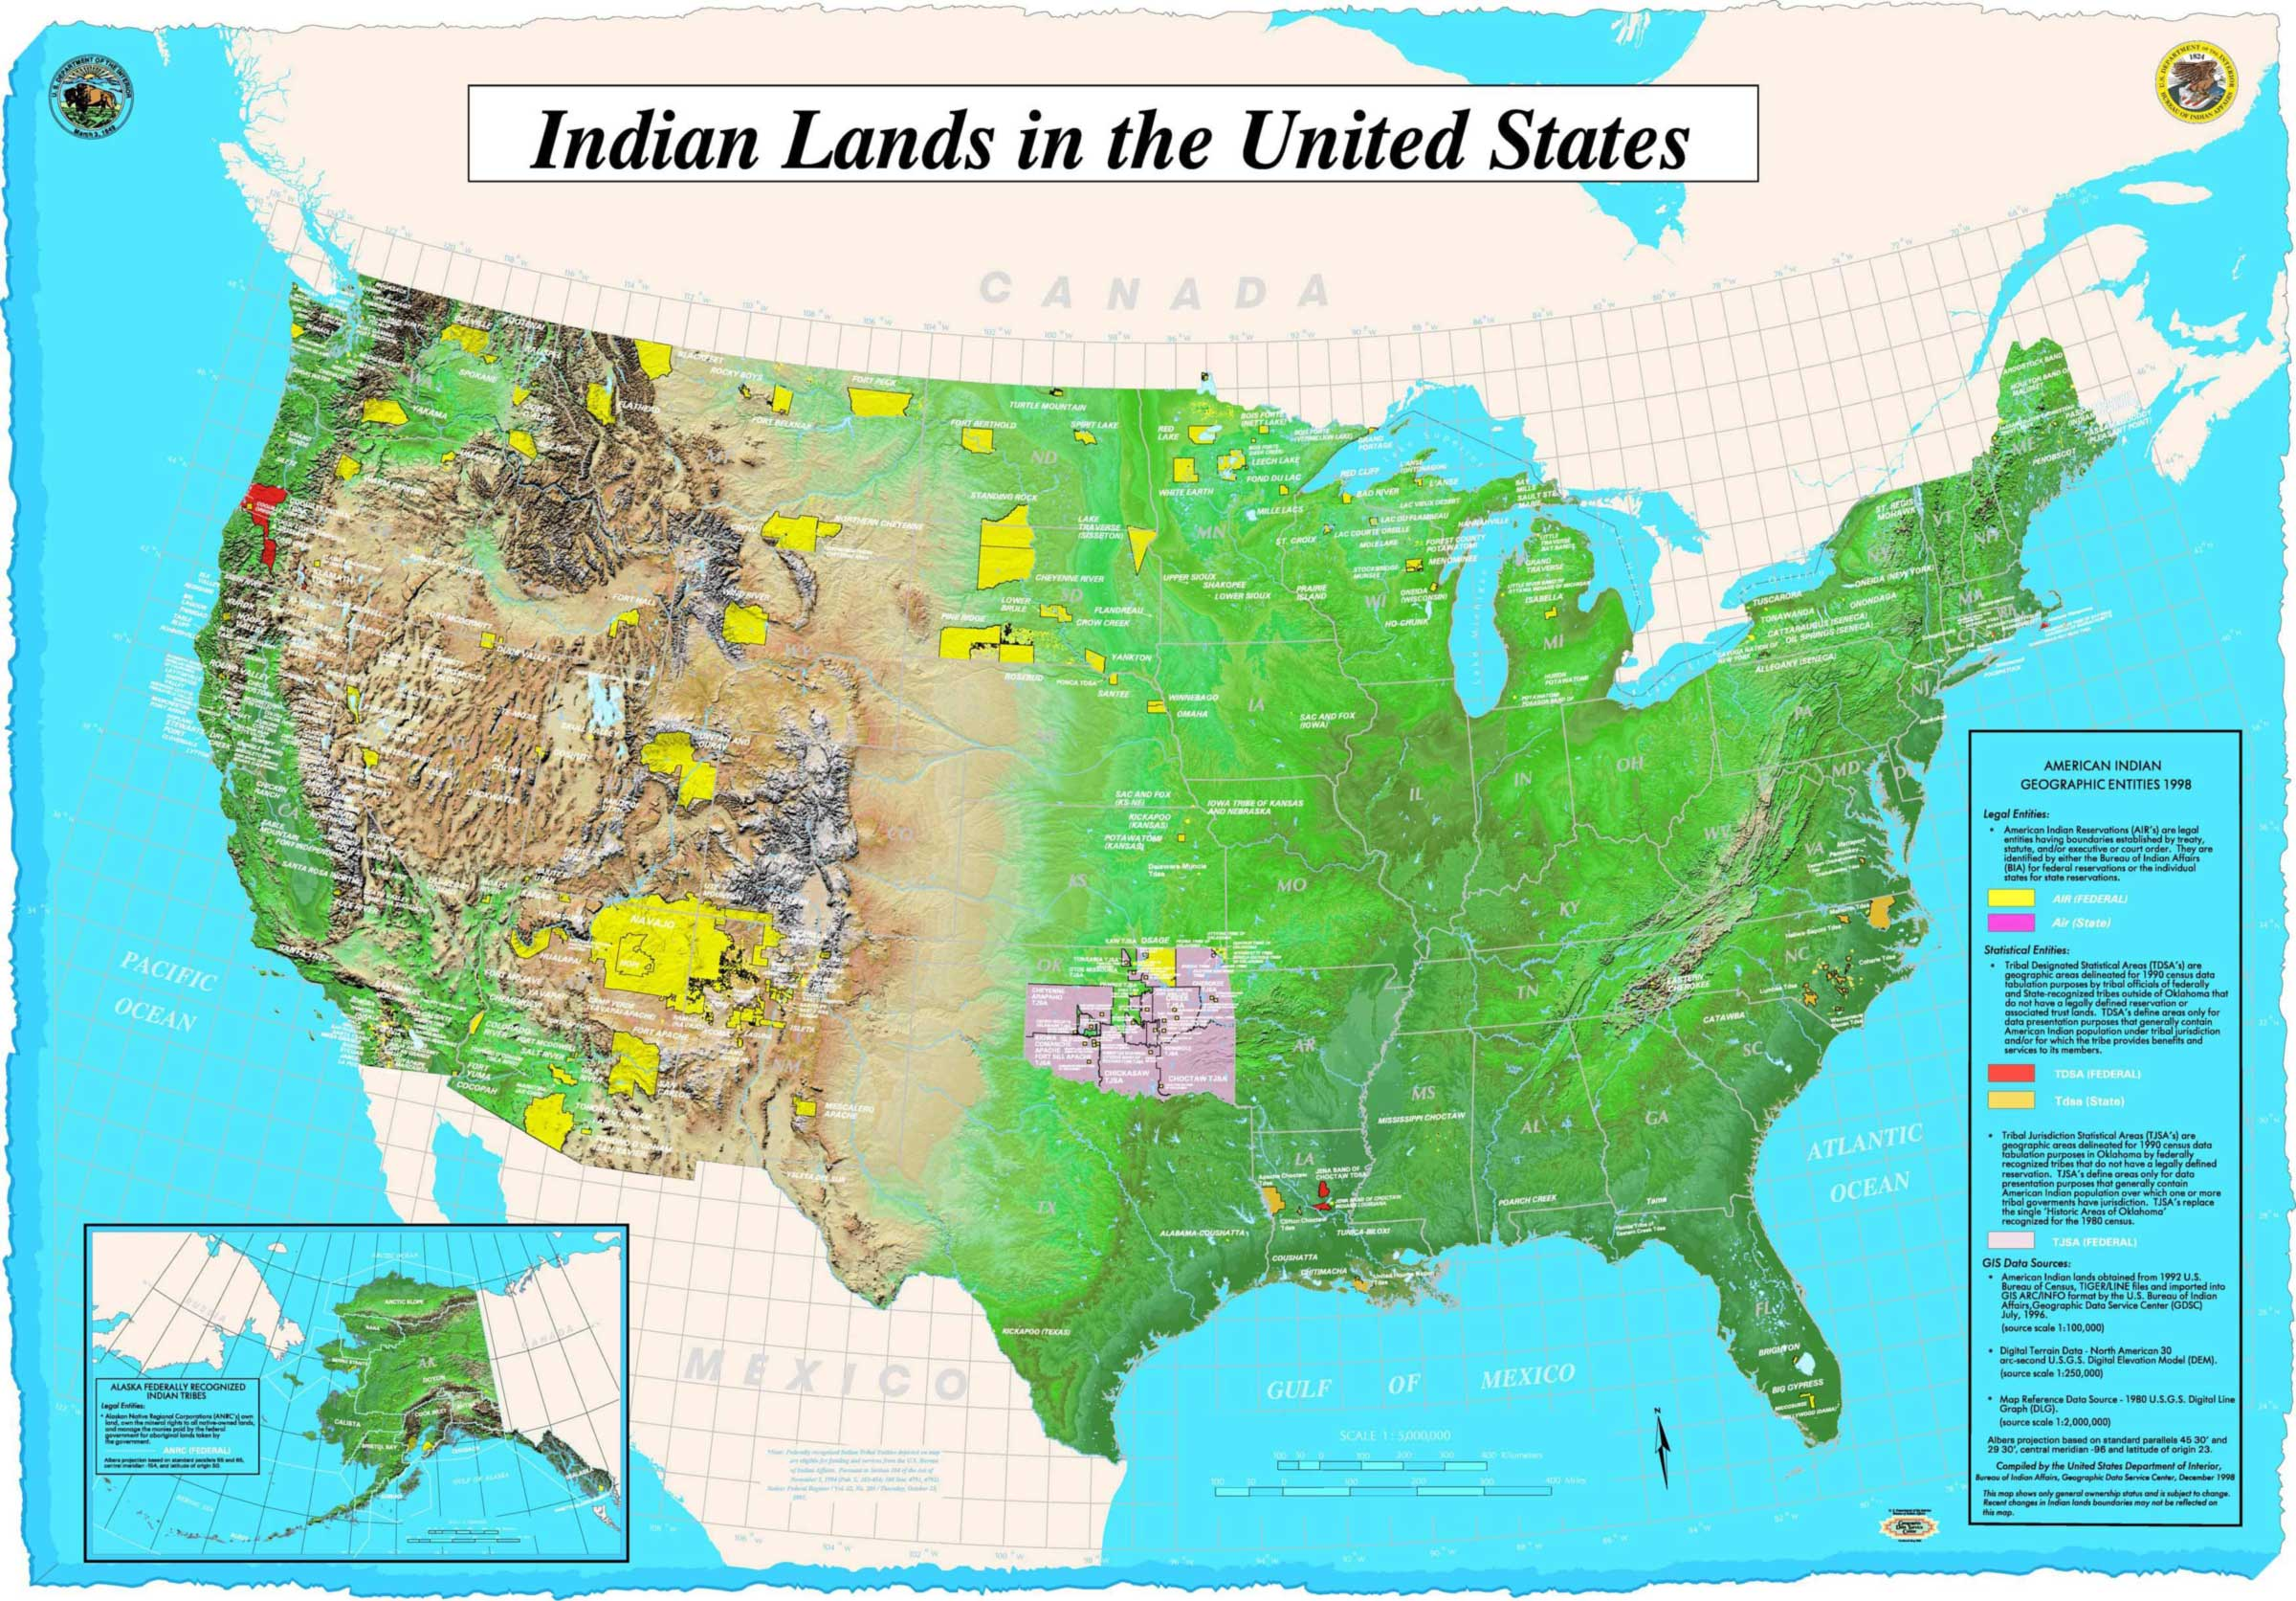 Map Of Indian Lands In Us Mapsofnet - Map of indian lands in the us